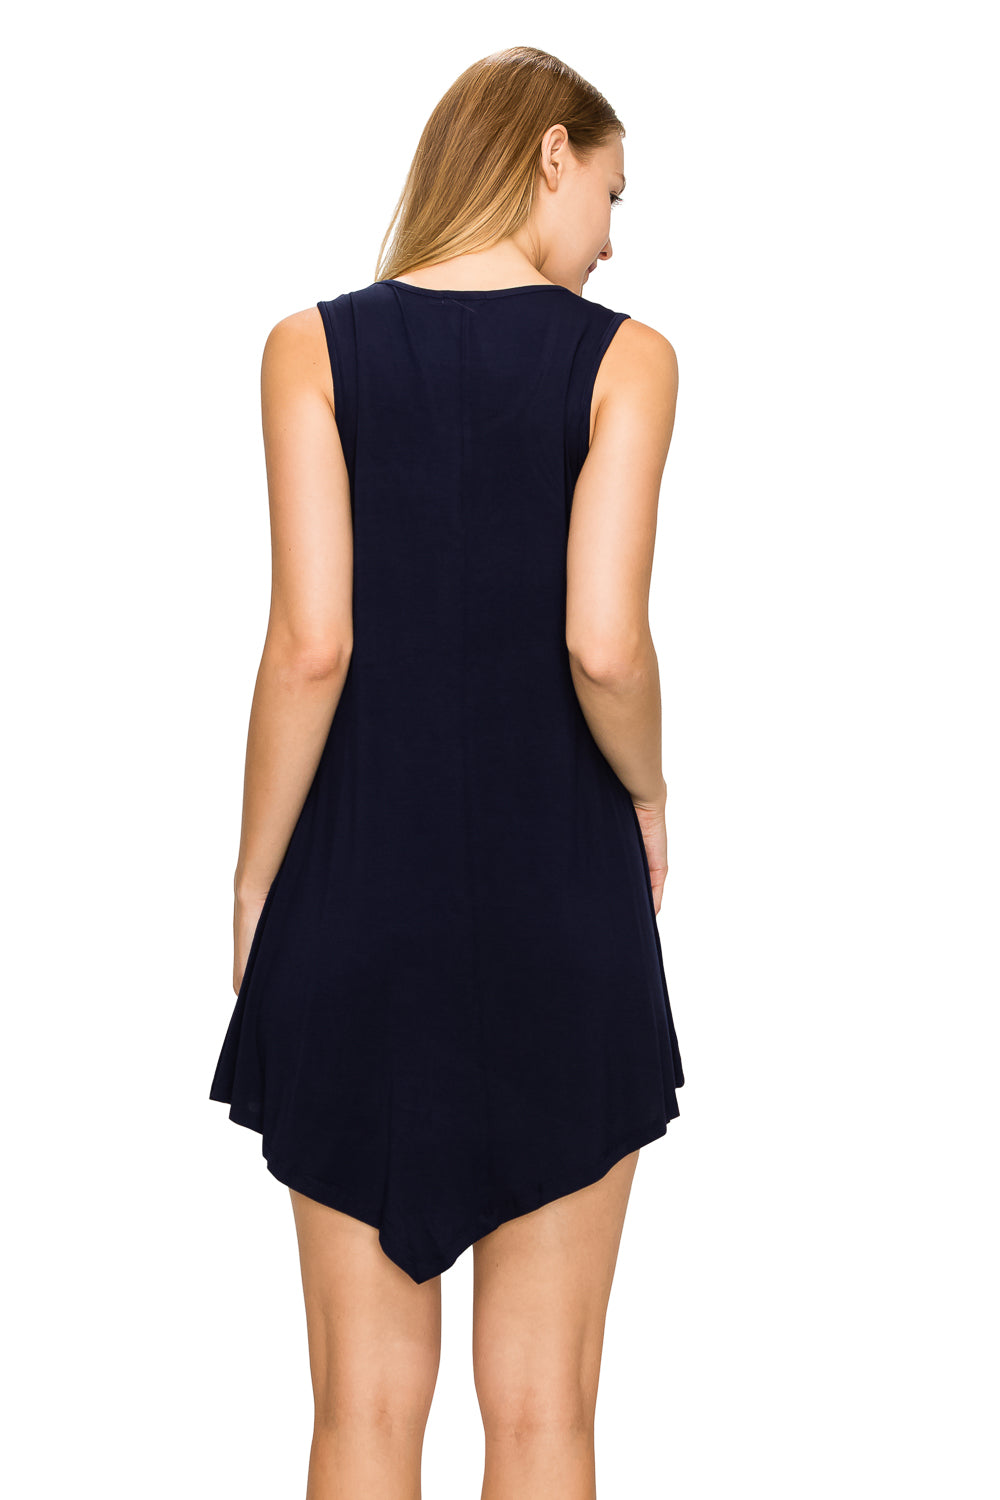 Navy Sleeveless Tank Tunic - Poplooks